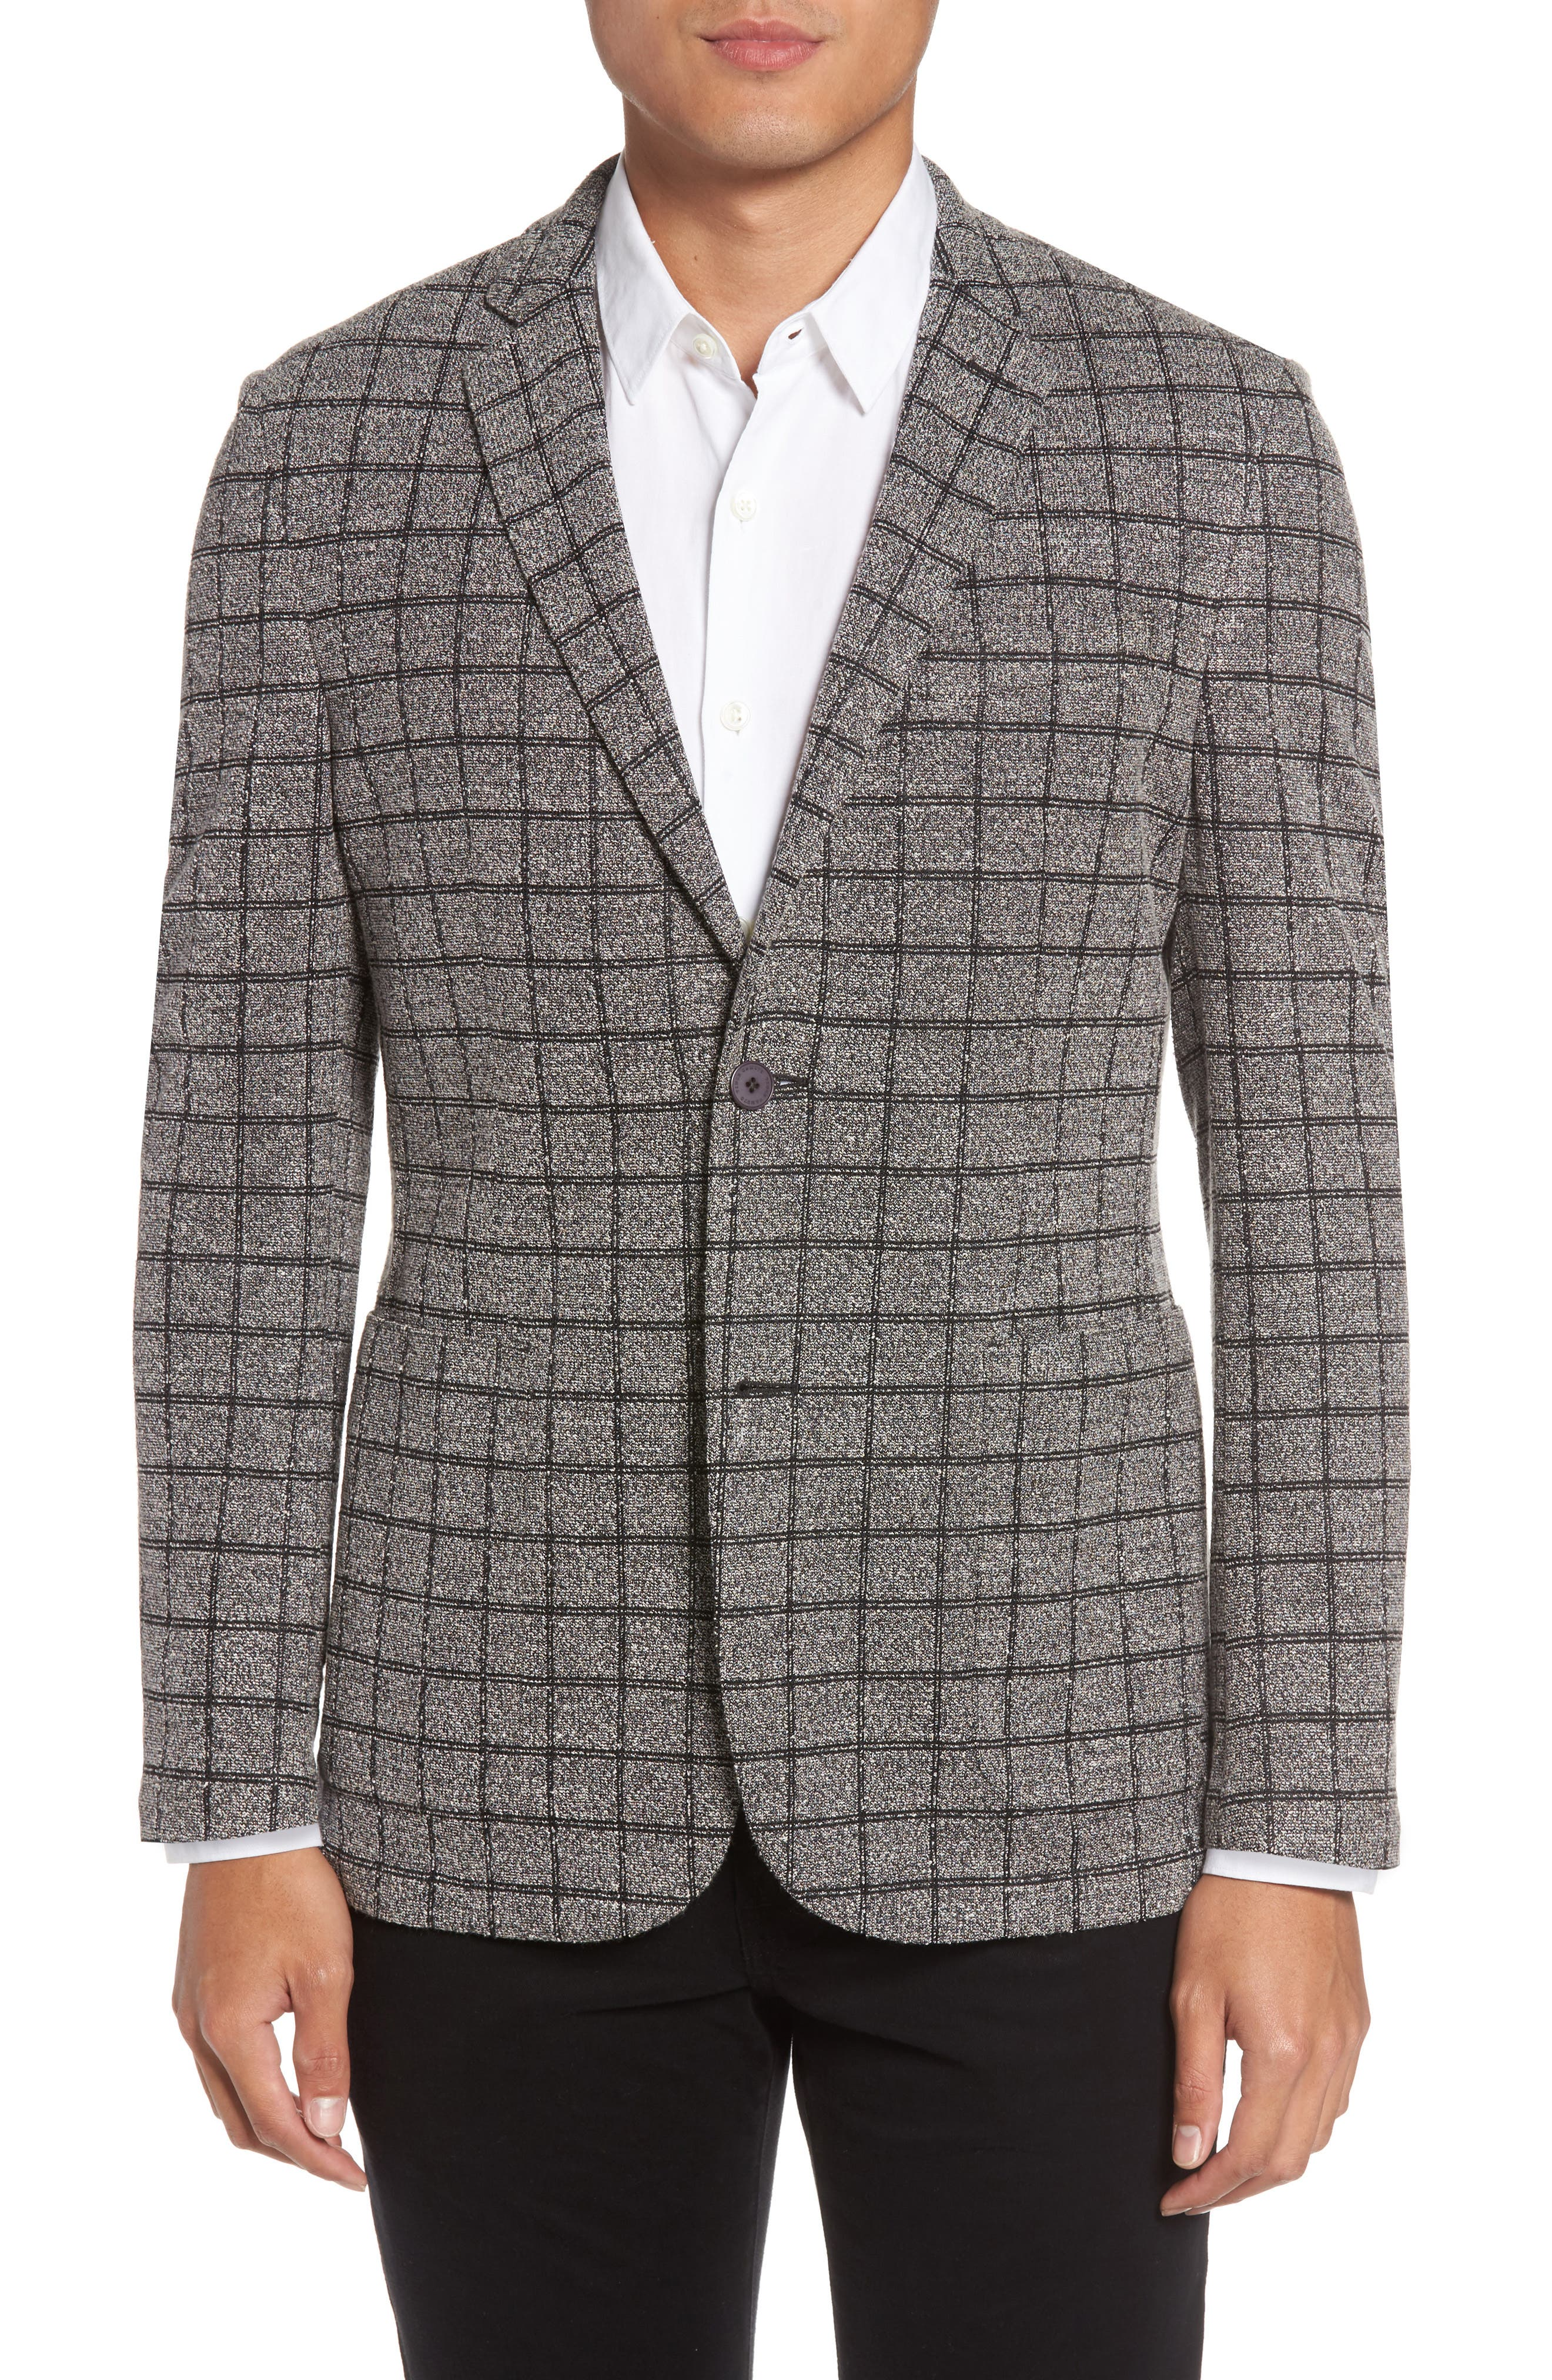 Del Aria Slim Fit Check Knit Jacket,                         Main,                         color, Charcoal Windowpane Boucle